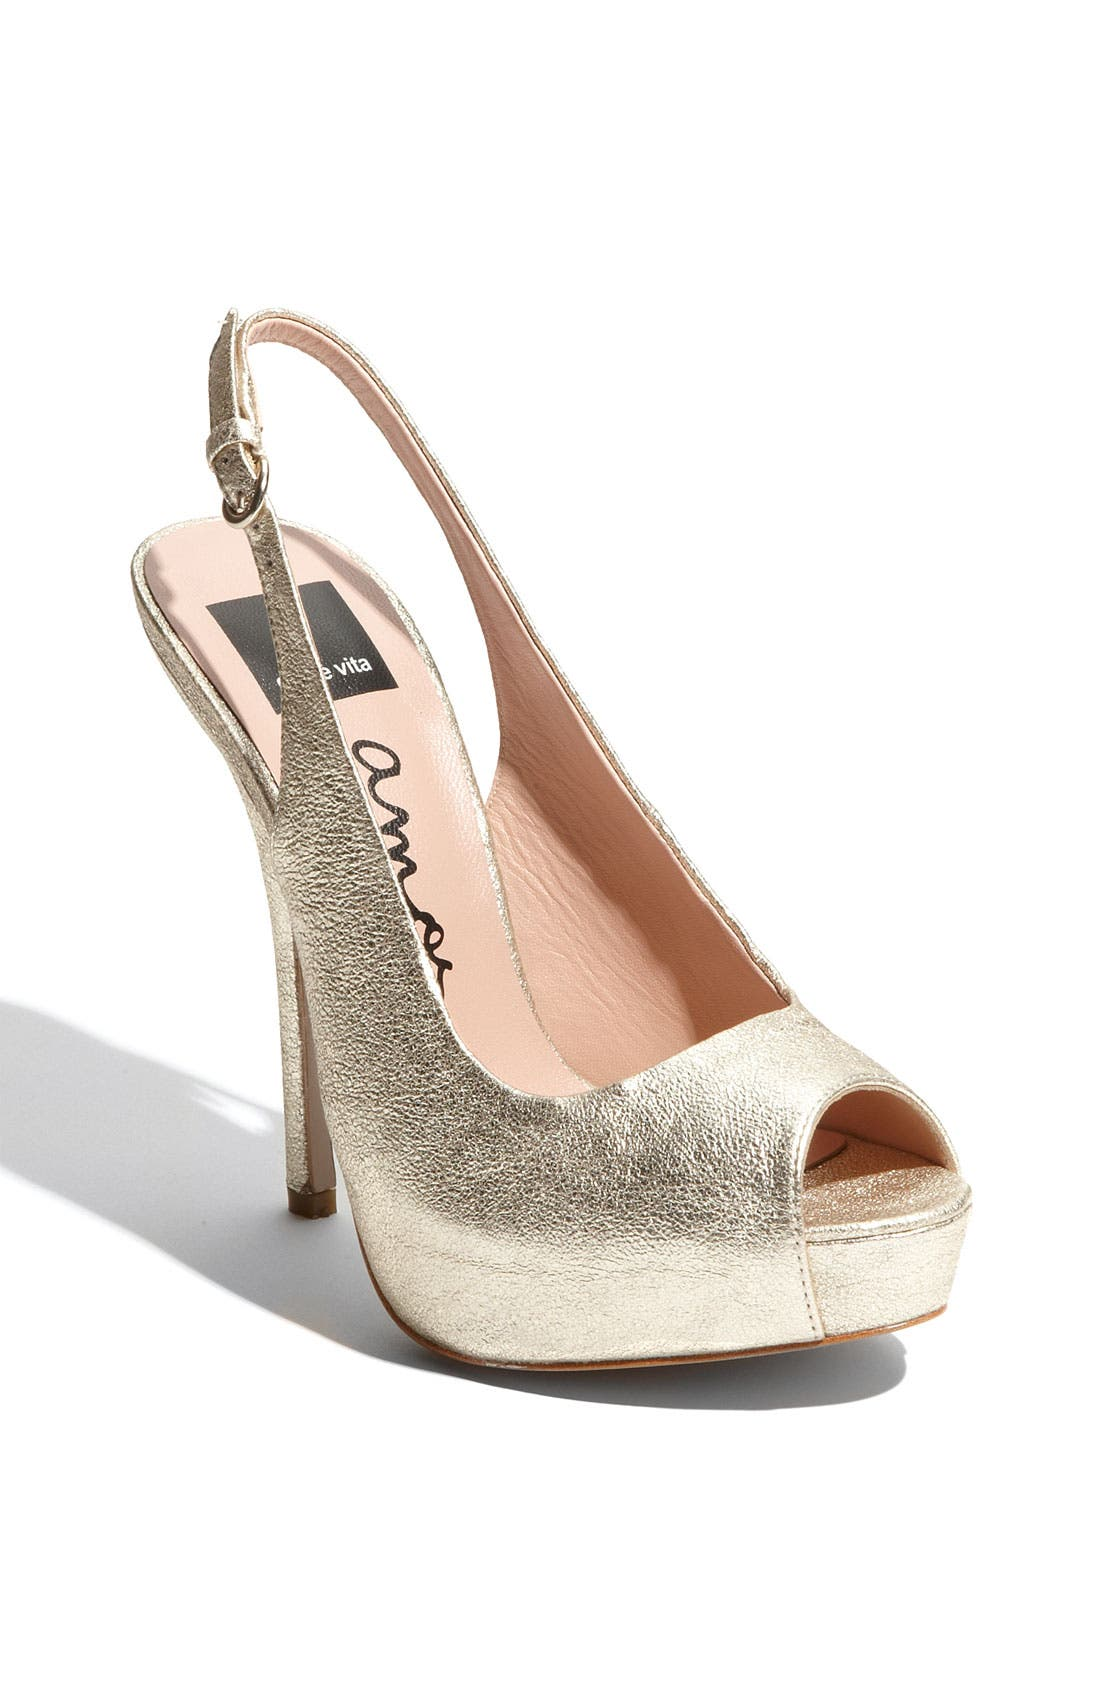 DOLCE VITA, 'Vivo' Slingback Pump, Main thumbnail 1, color, 045